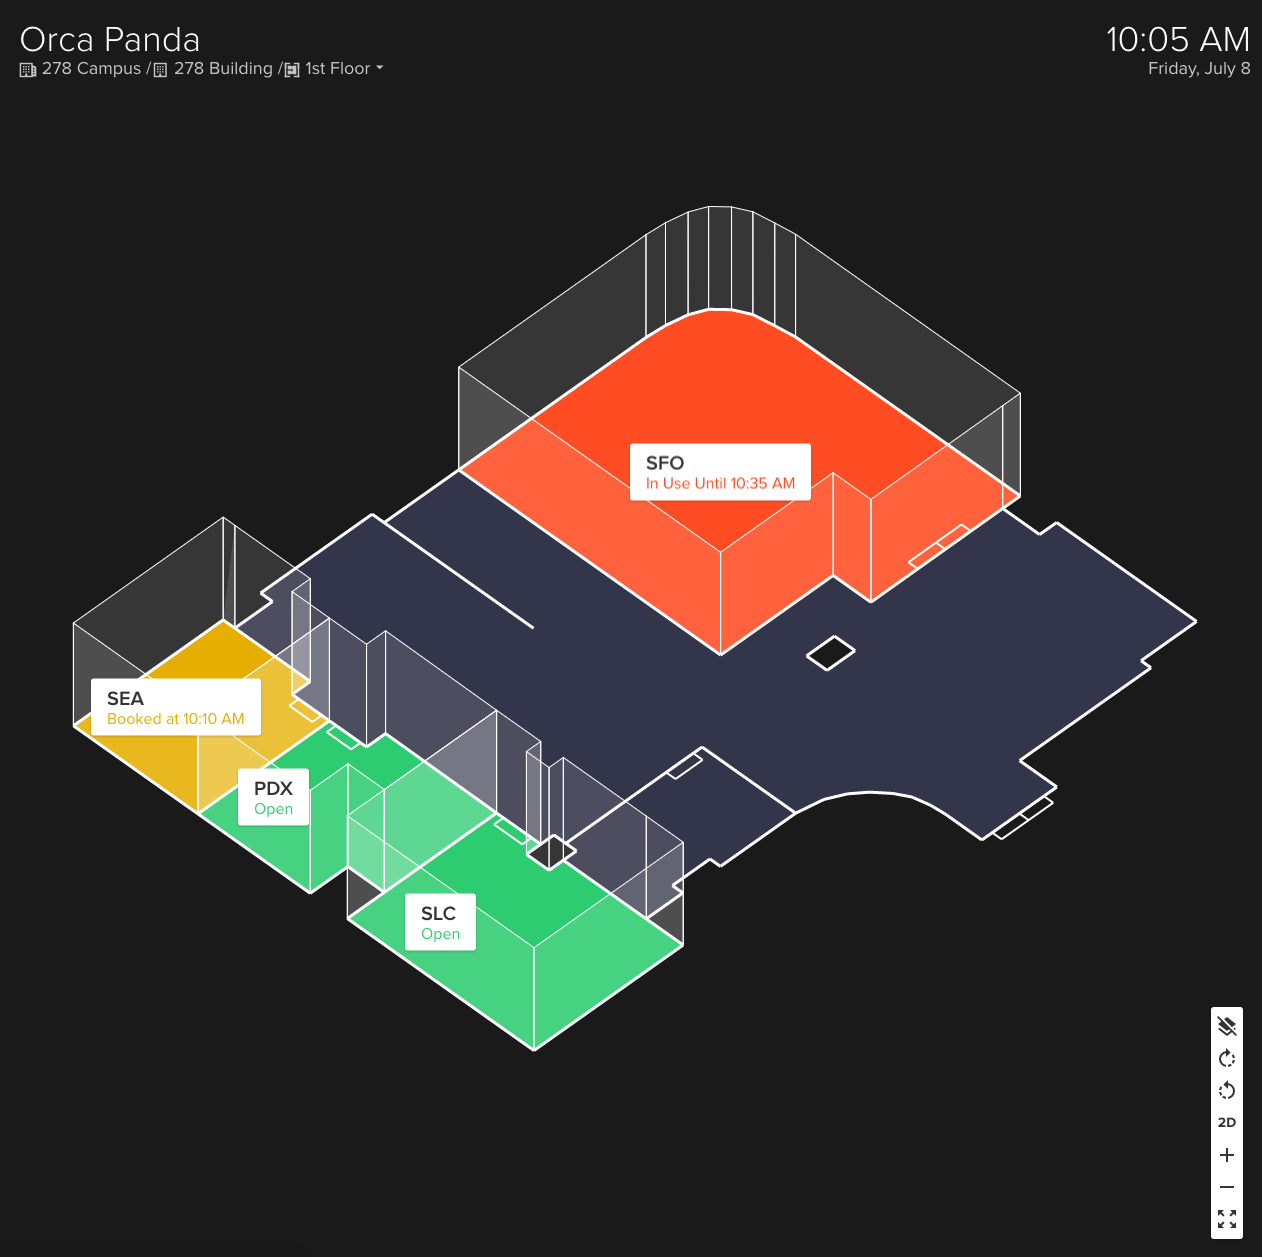 Color-coded Meeting Room Map by Teem